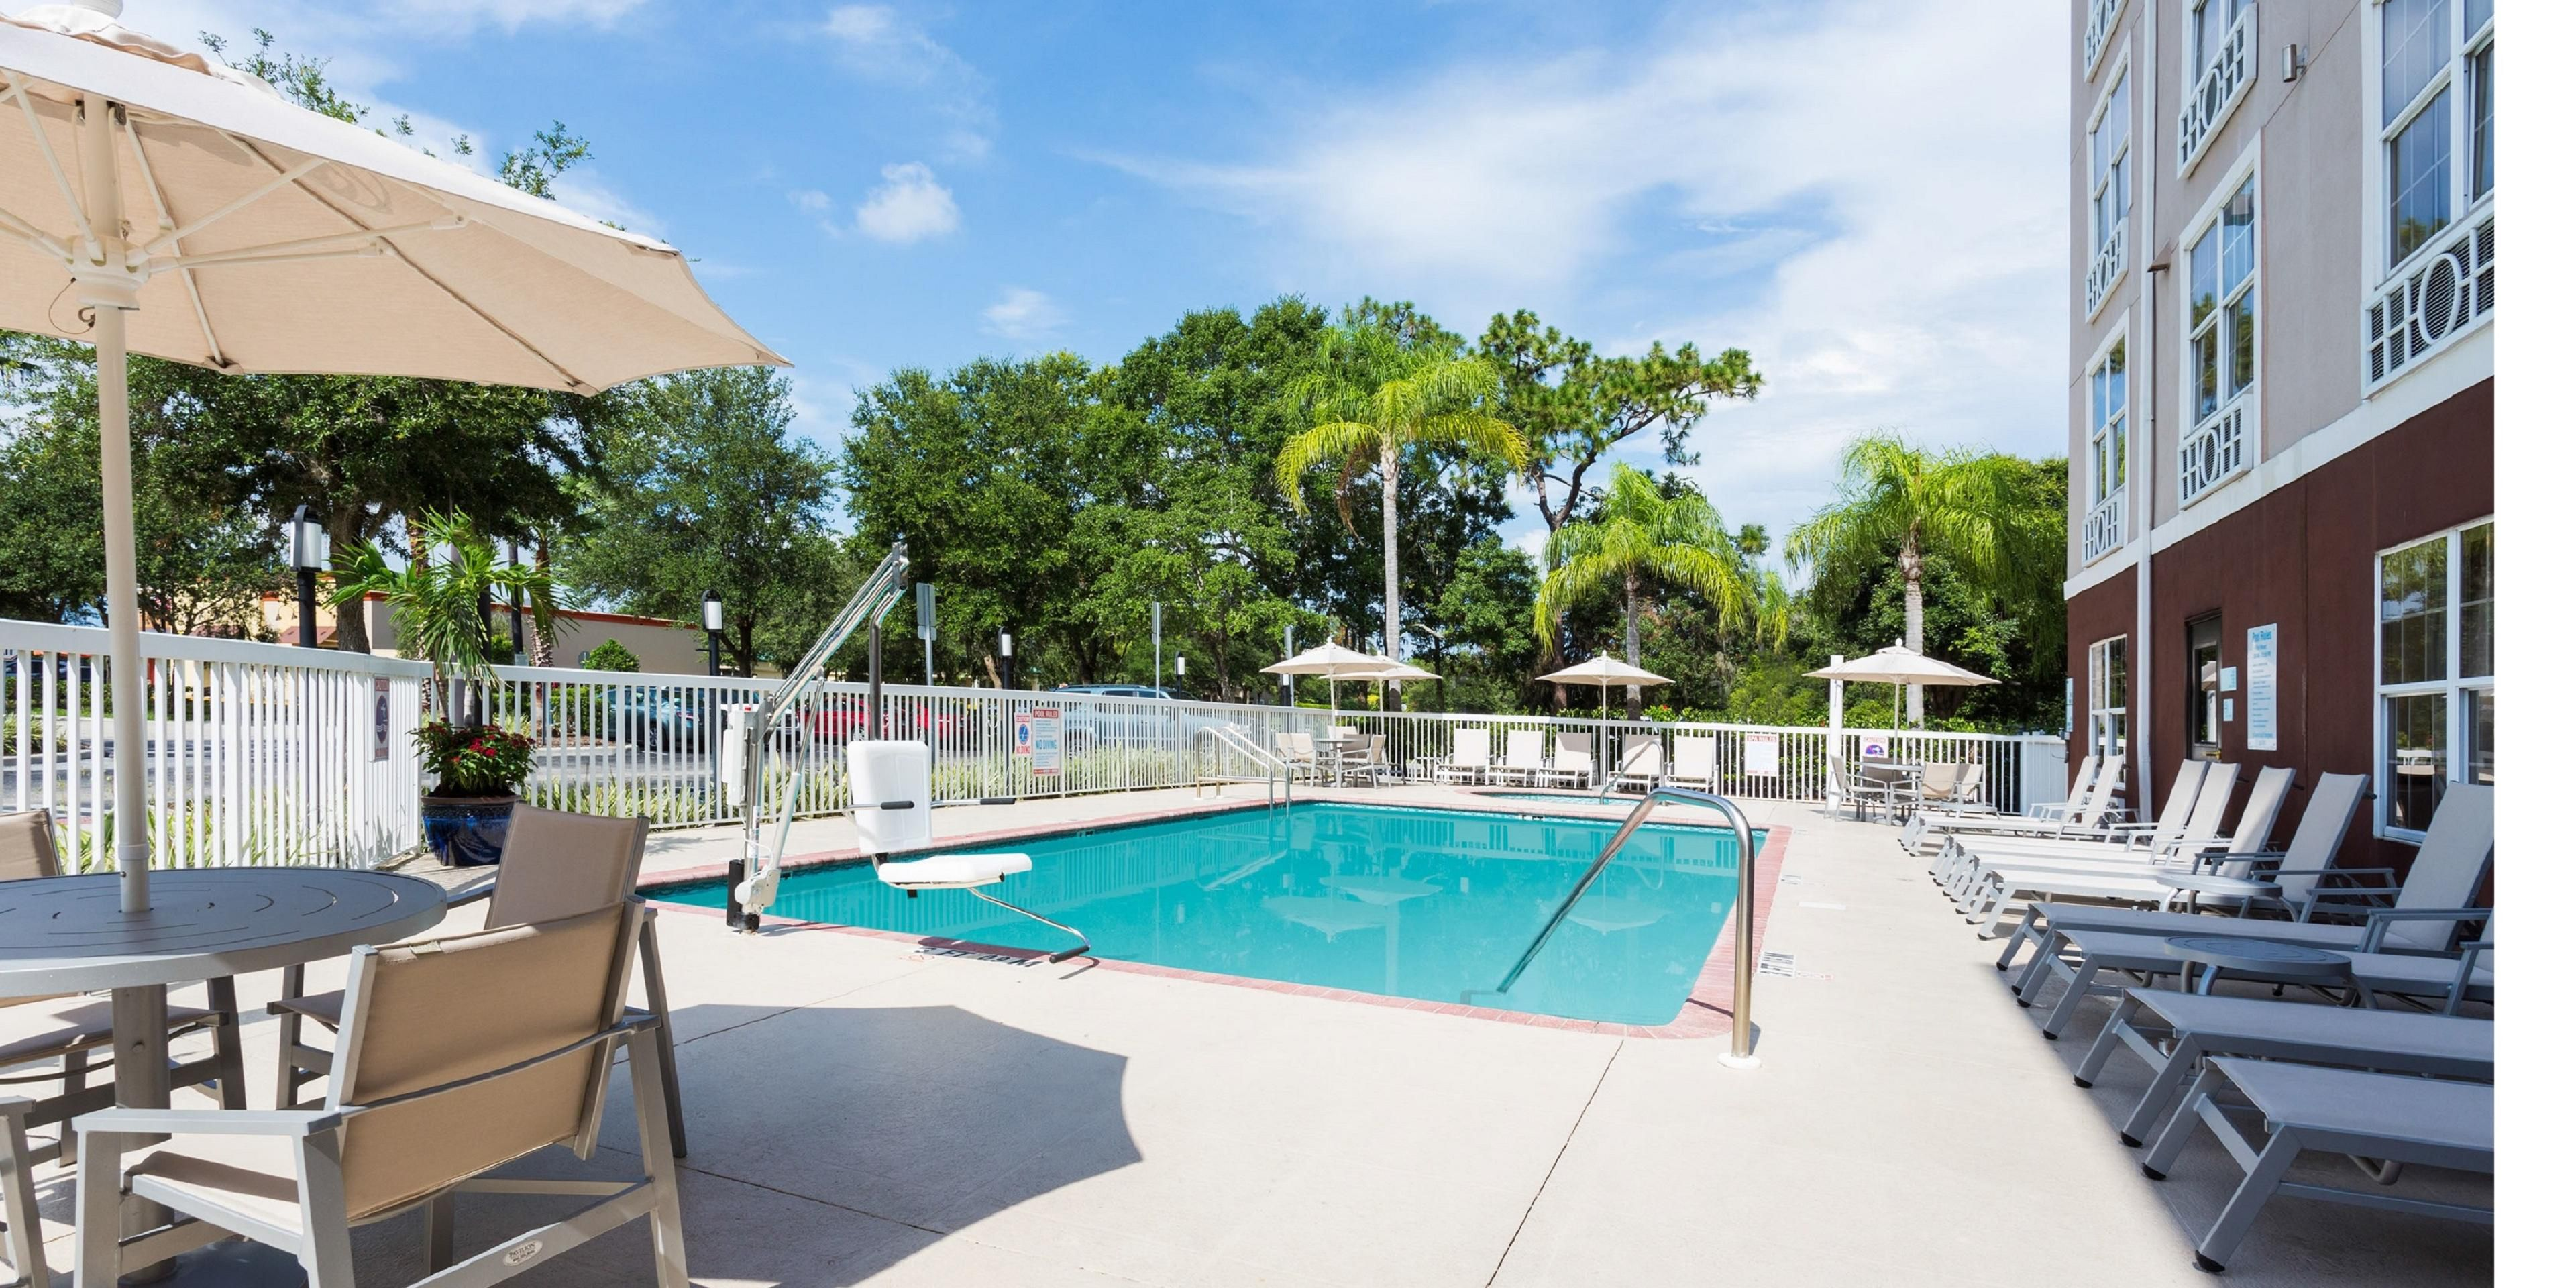 Holiday Inn Express & Suites Sarasota East - I-75 Hotel by IHG